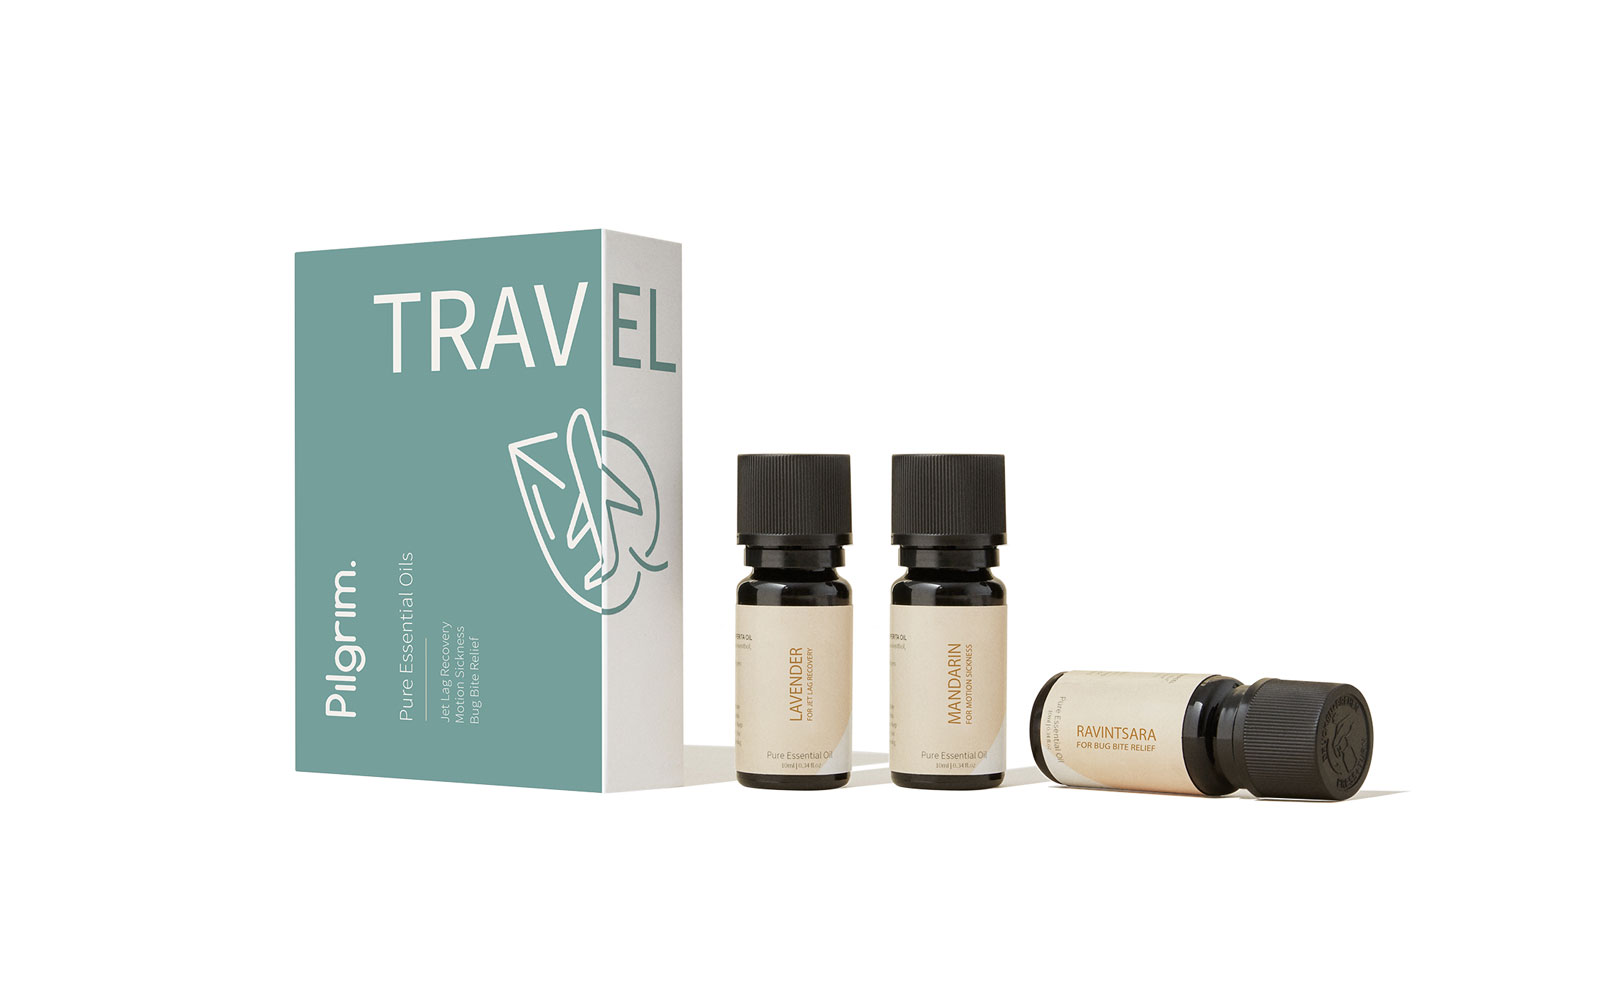 Pilgrim Travel Essential oils